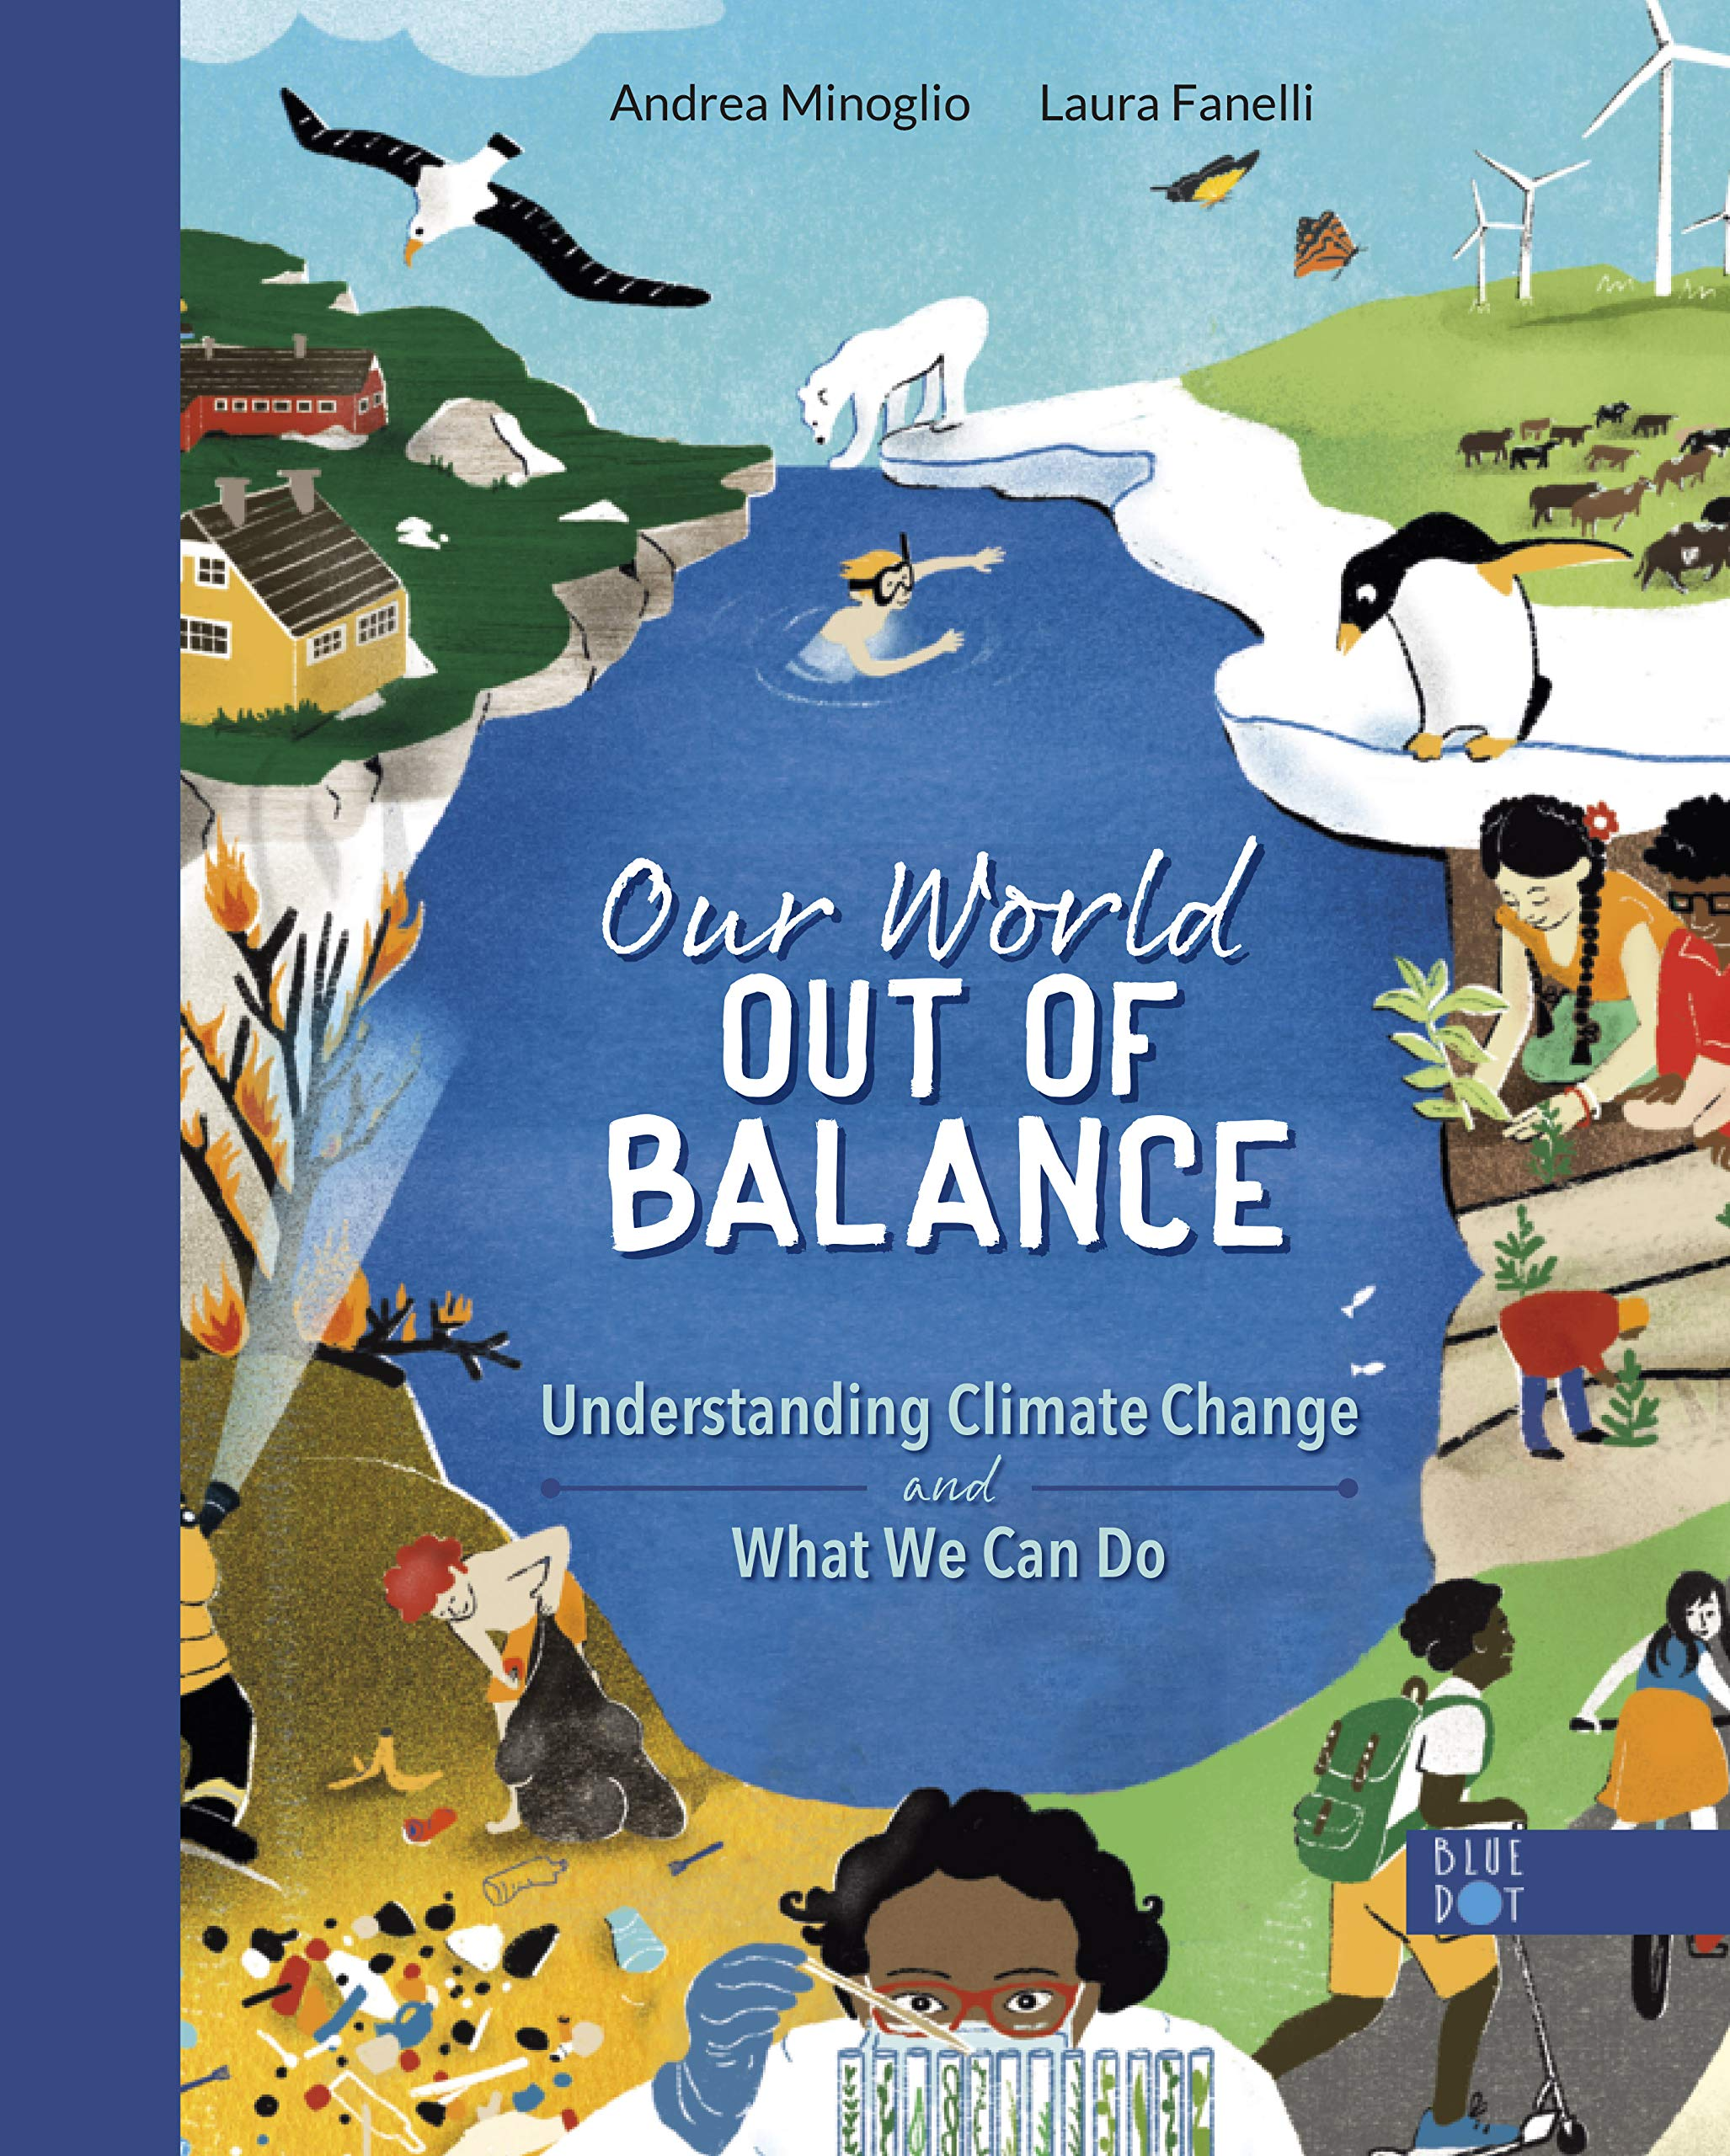 Our World Out of Balance: Understanding Climate Change and What We Can Do